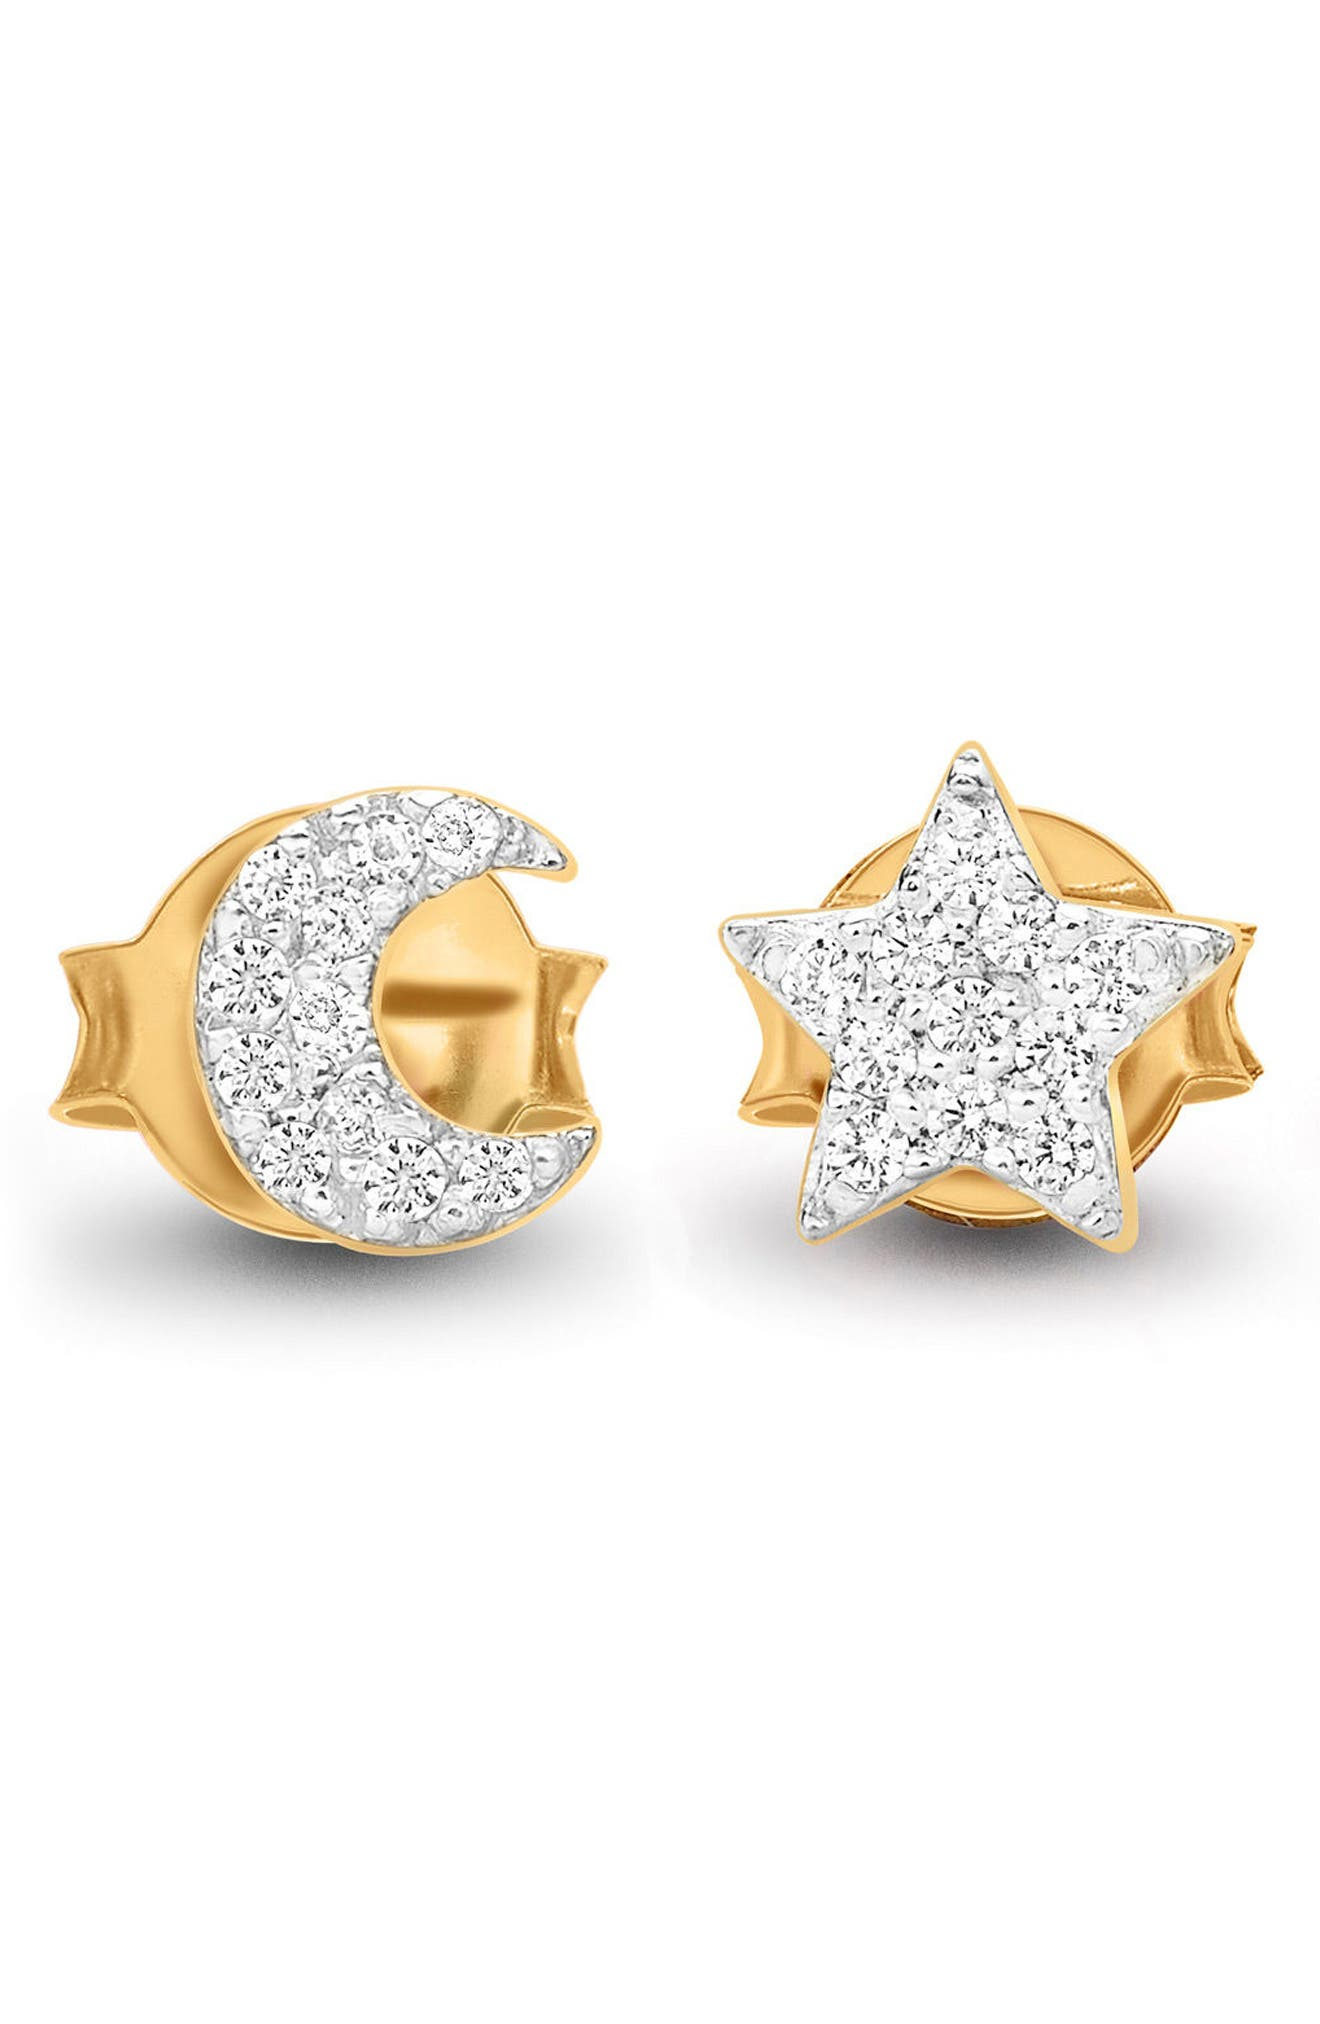 PAVE MOON & STAR STUD EARRINGS